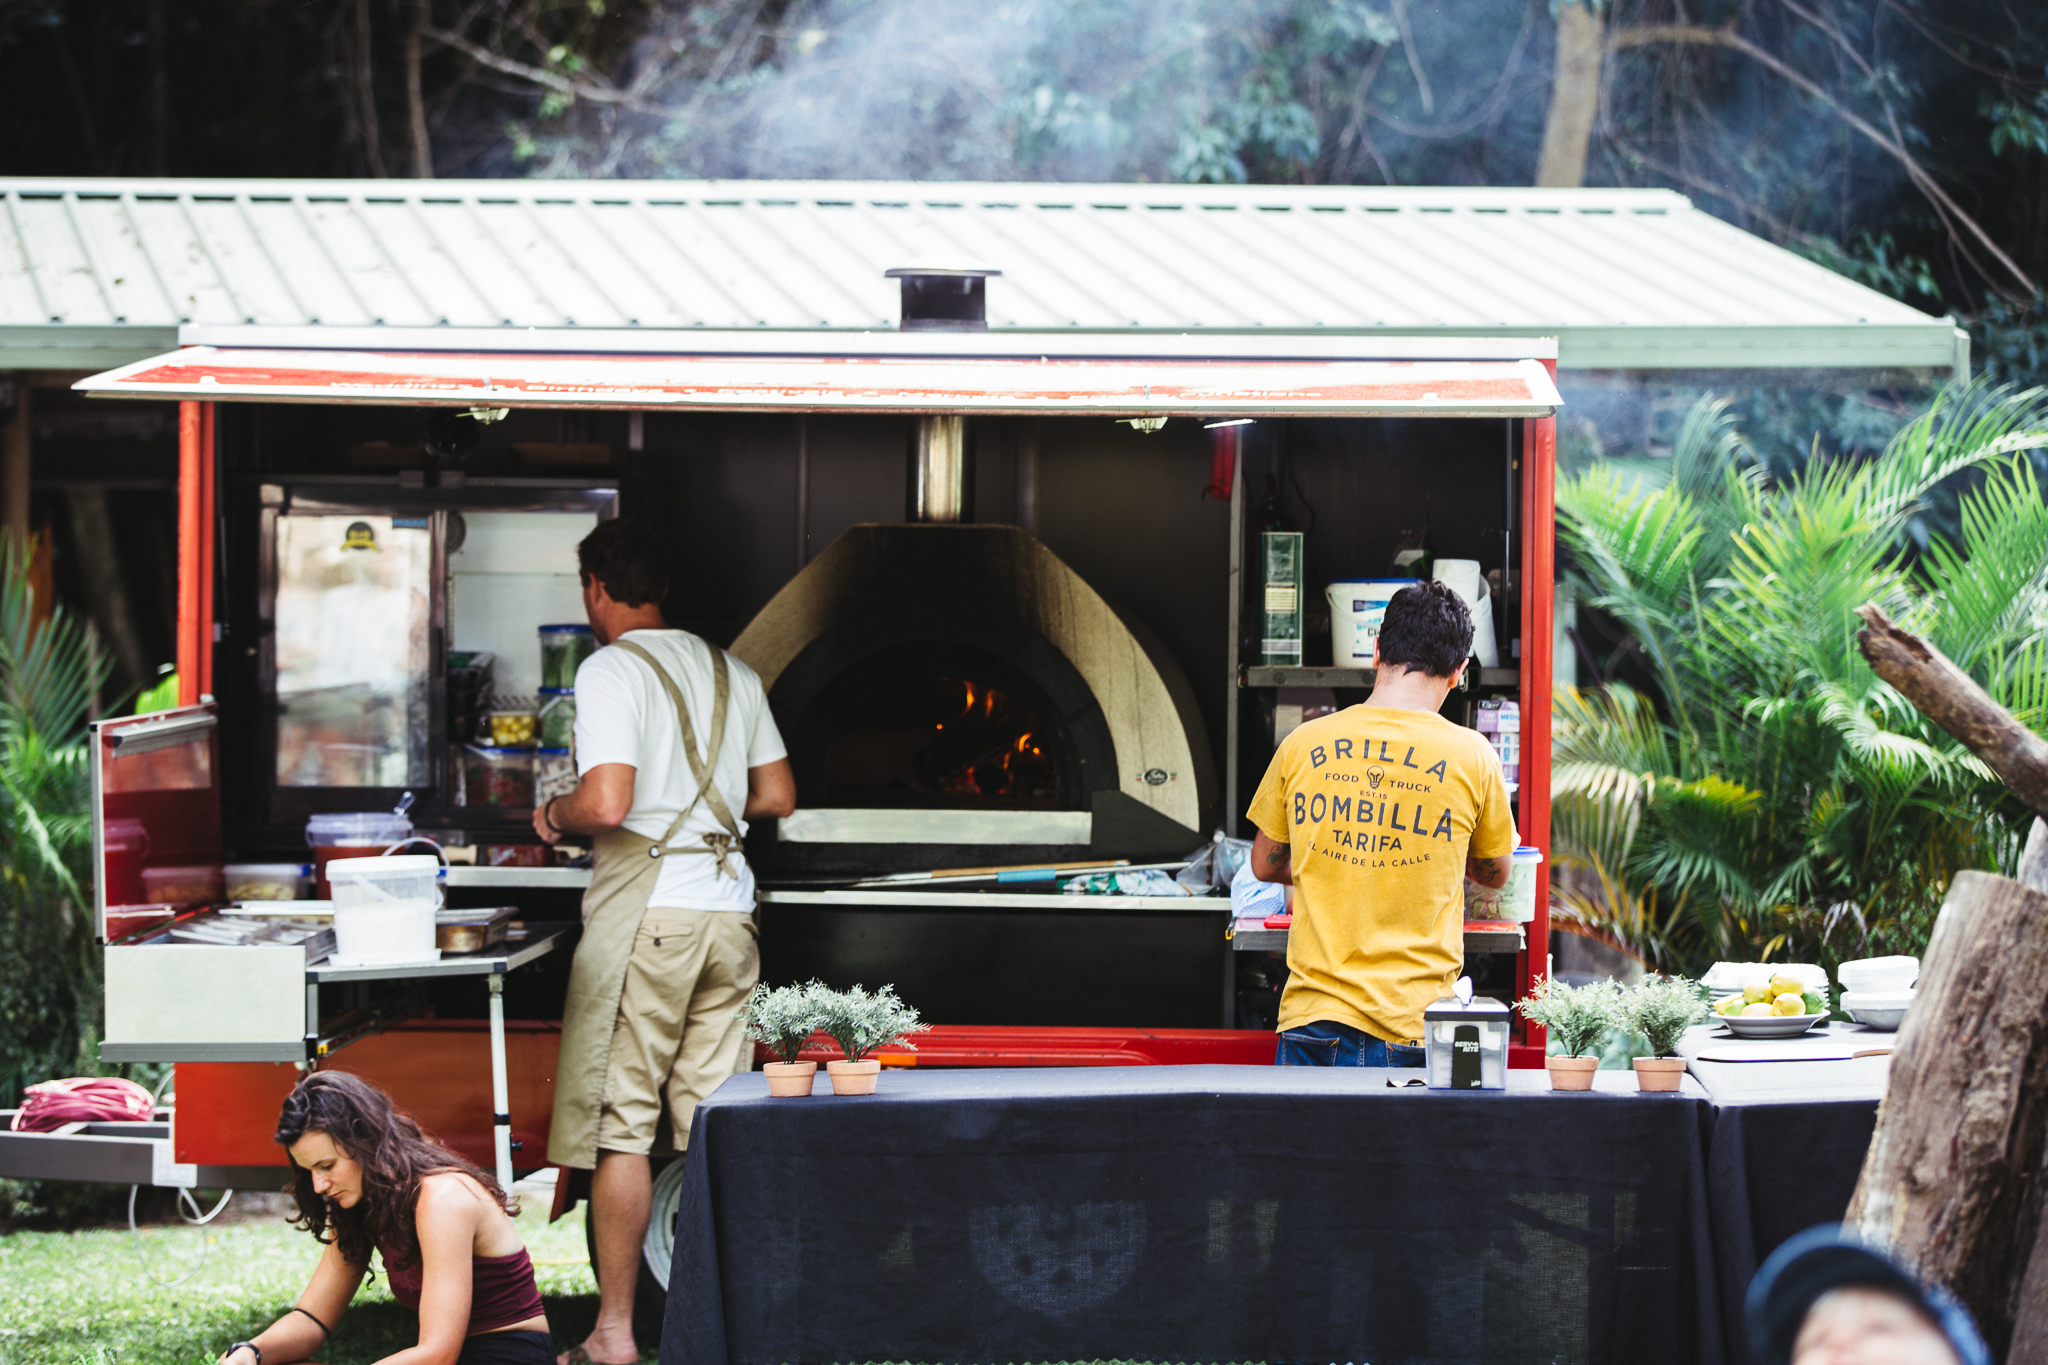 Gold coast tipis, wedding, marquee hire, gold coast, wood fired pizza, wedding catering, wedfest, food truck